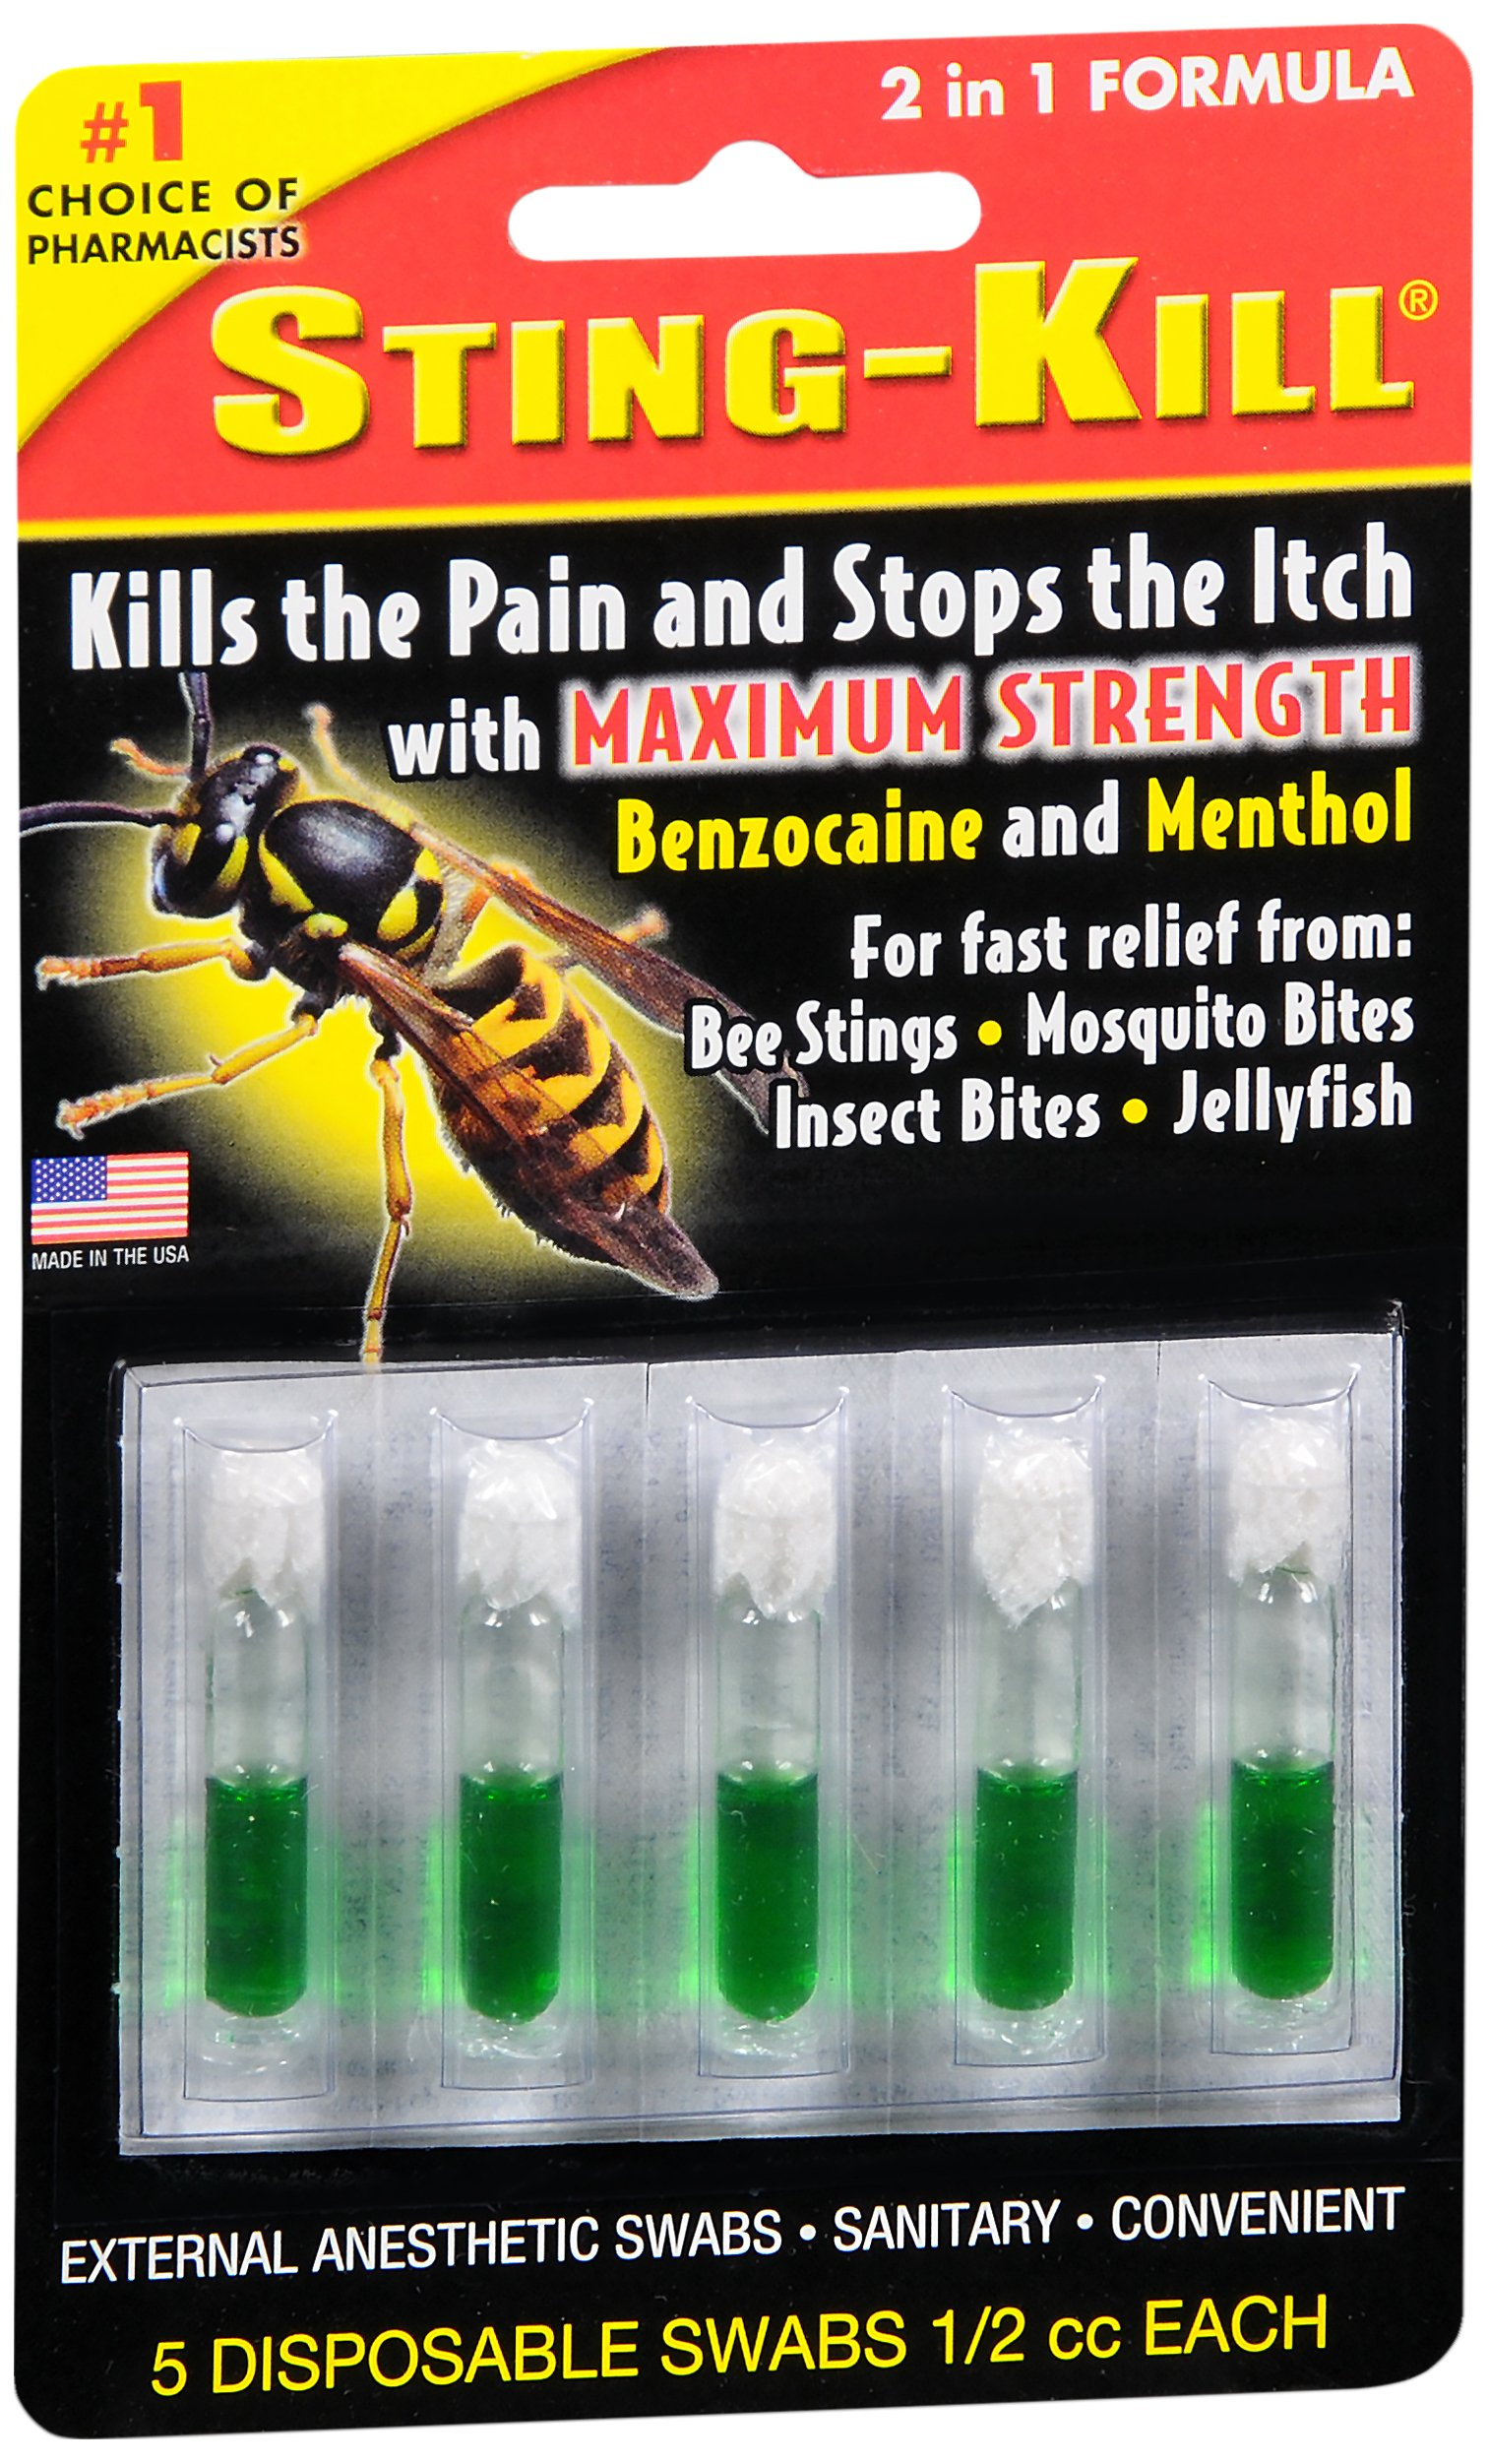 Special pack of 6 STING KILL DISPOSABLE SWABS 5 per pack by Sting-kill